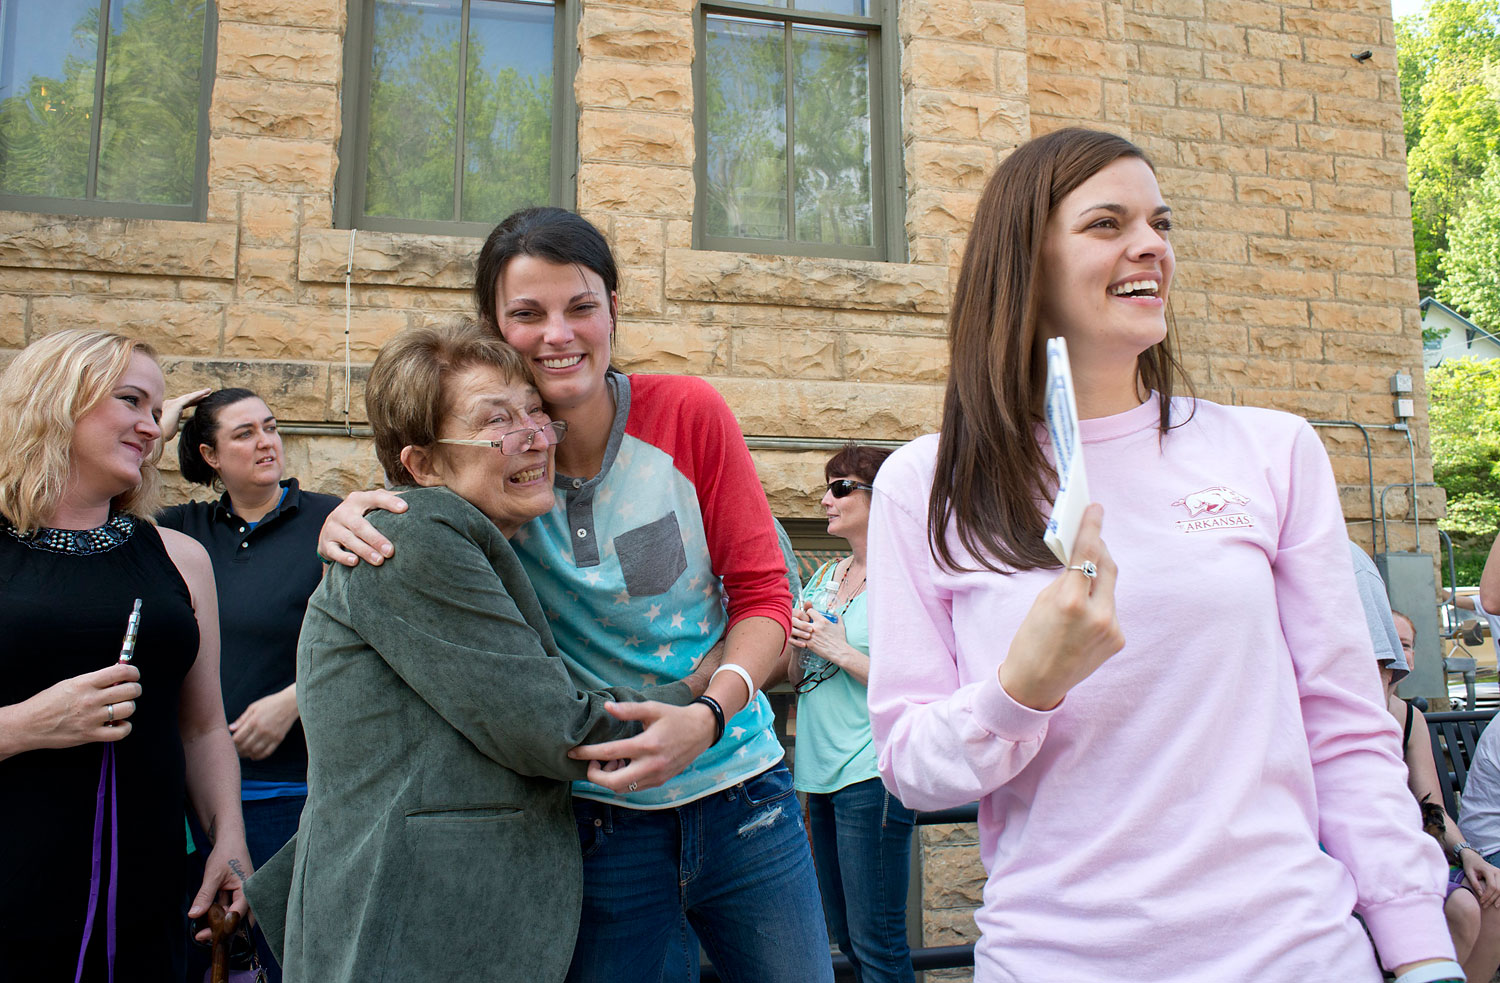 Jennifer Rambo, right, smiles as her partner Kristin Seaton, center, hugs Sheryl Maples, left, the lead attorney who filed the Wright v. the State of Arkansas lawsuit, May 10, 2014, in Eureka Springs, Ark.